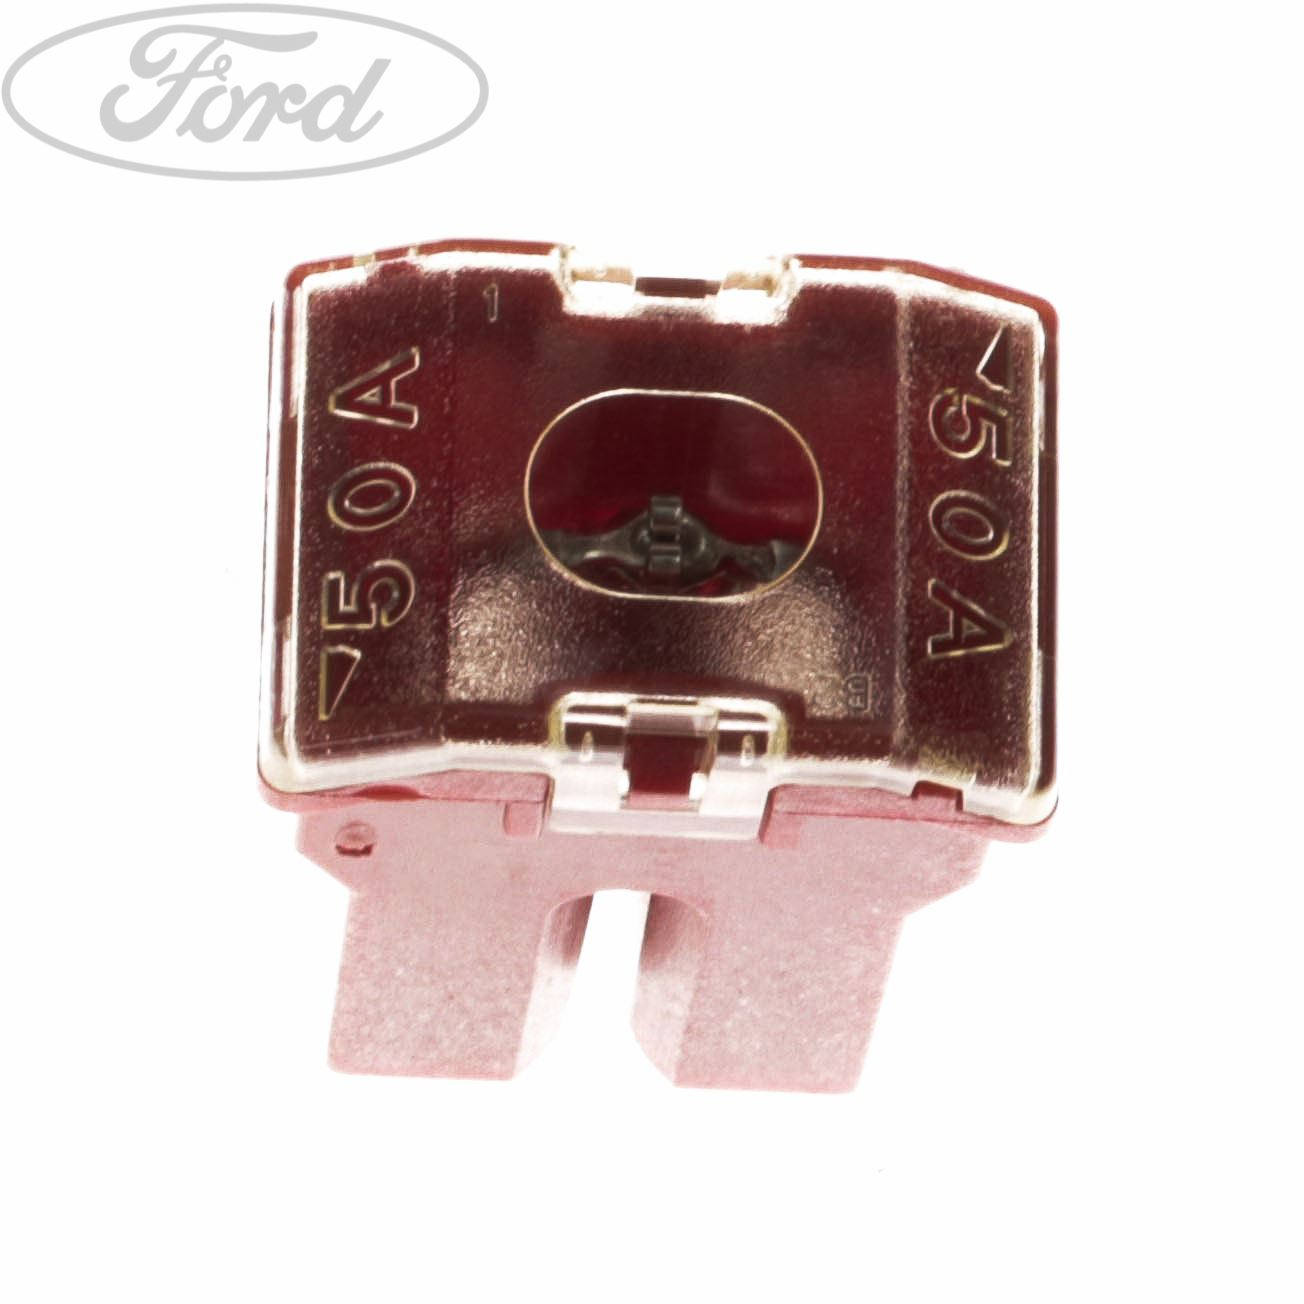 hight resolution of details about genuine ford escort orion fiesta transit motorcraft 50 amp fuse 6484181